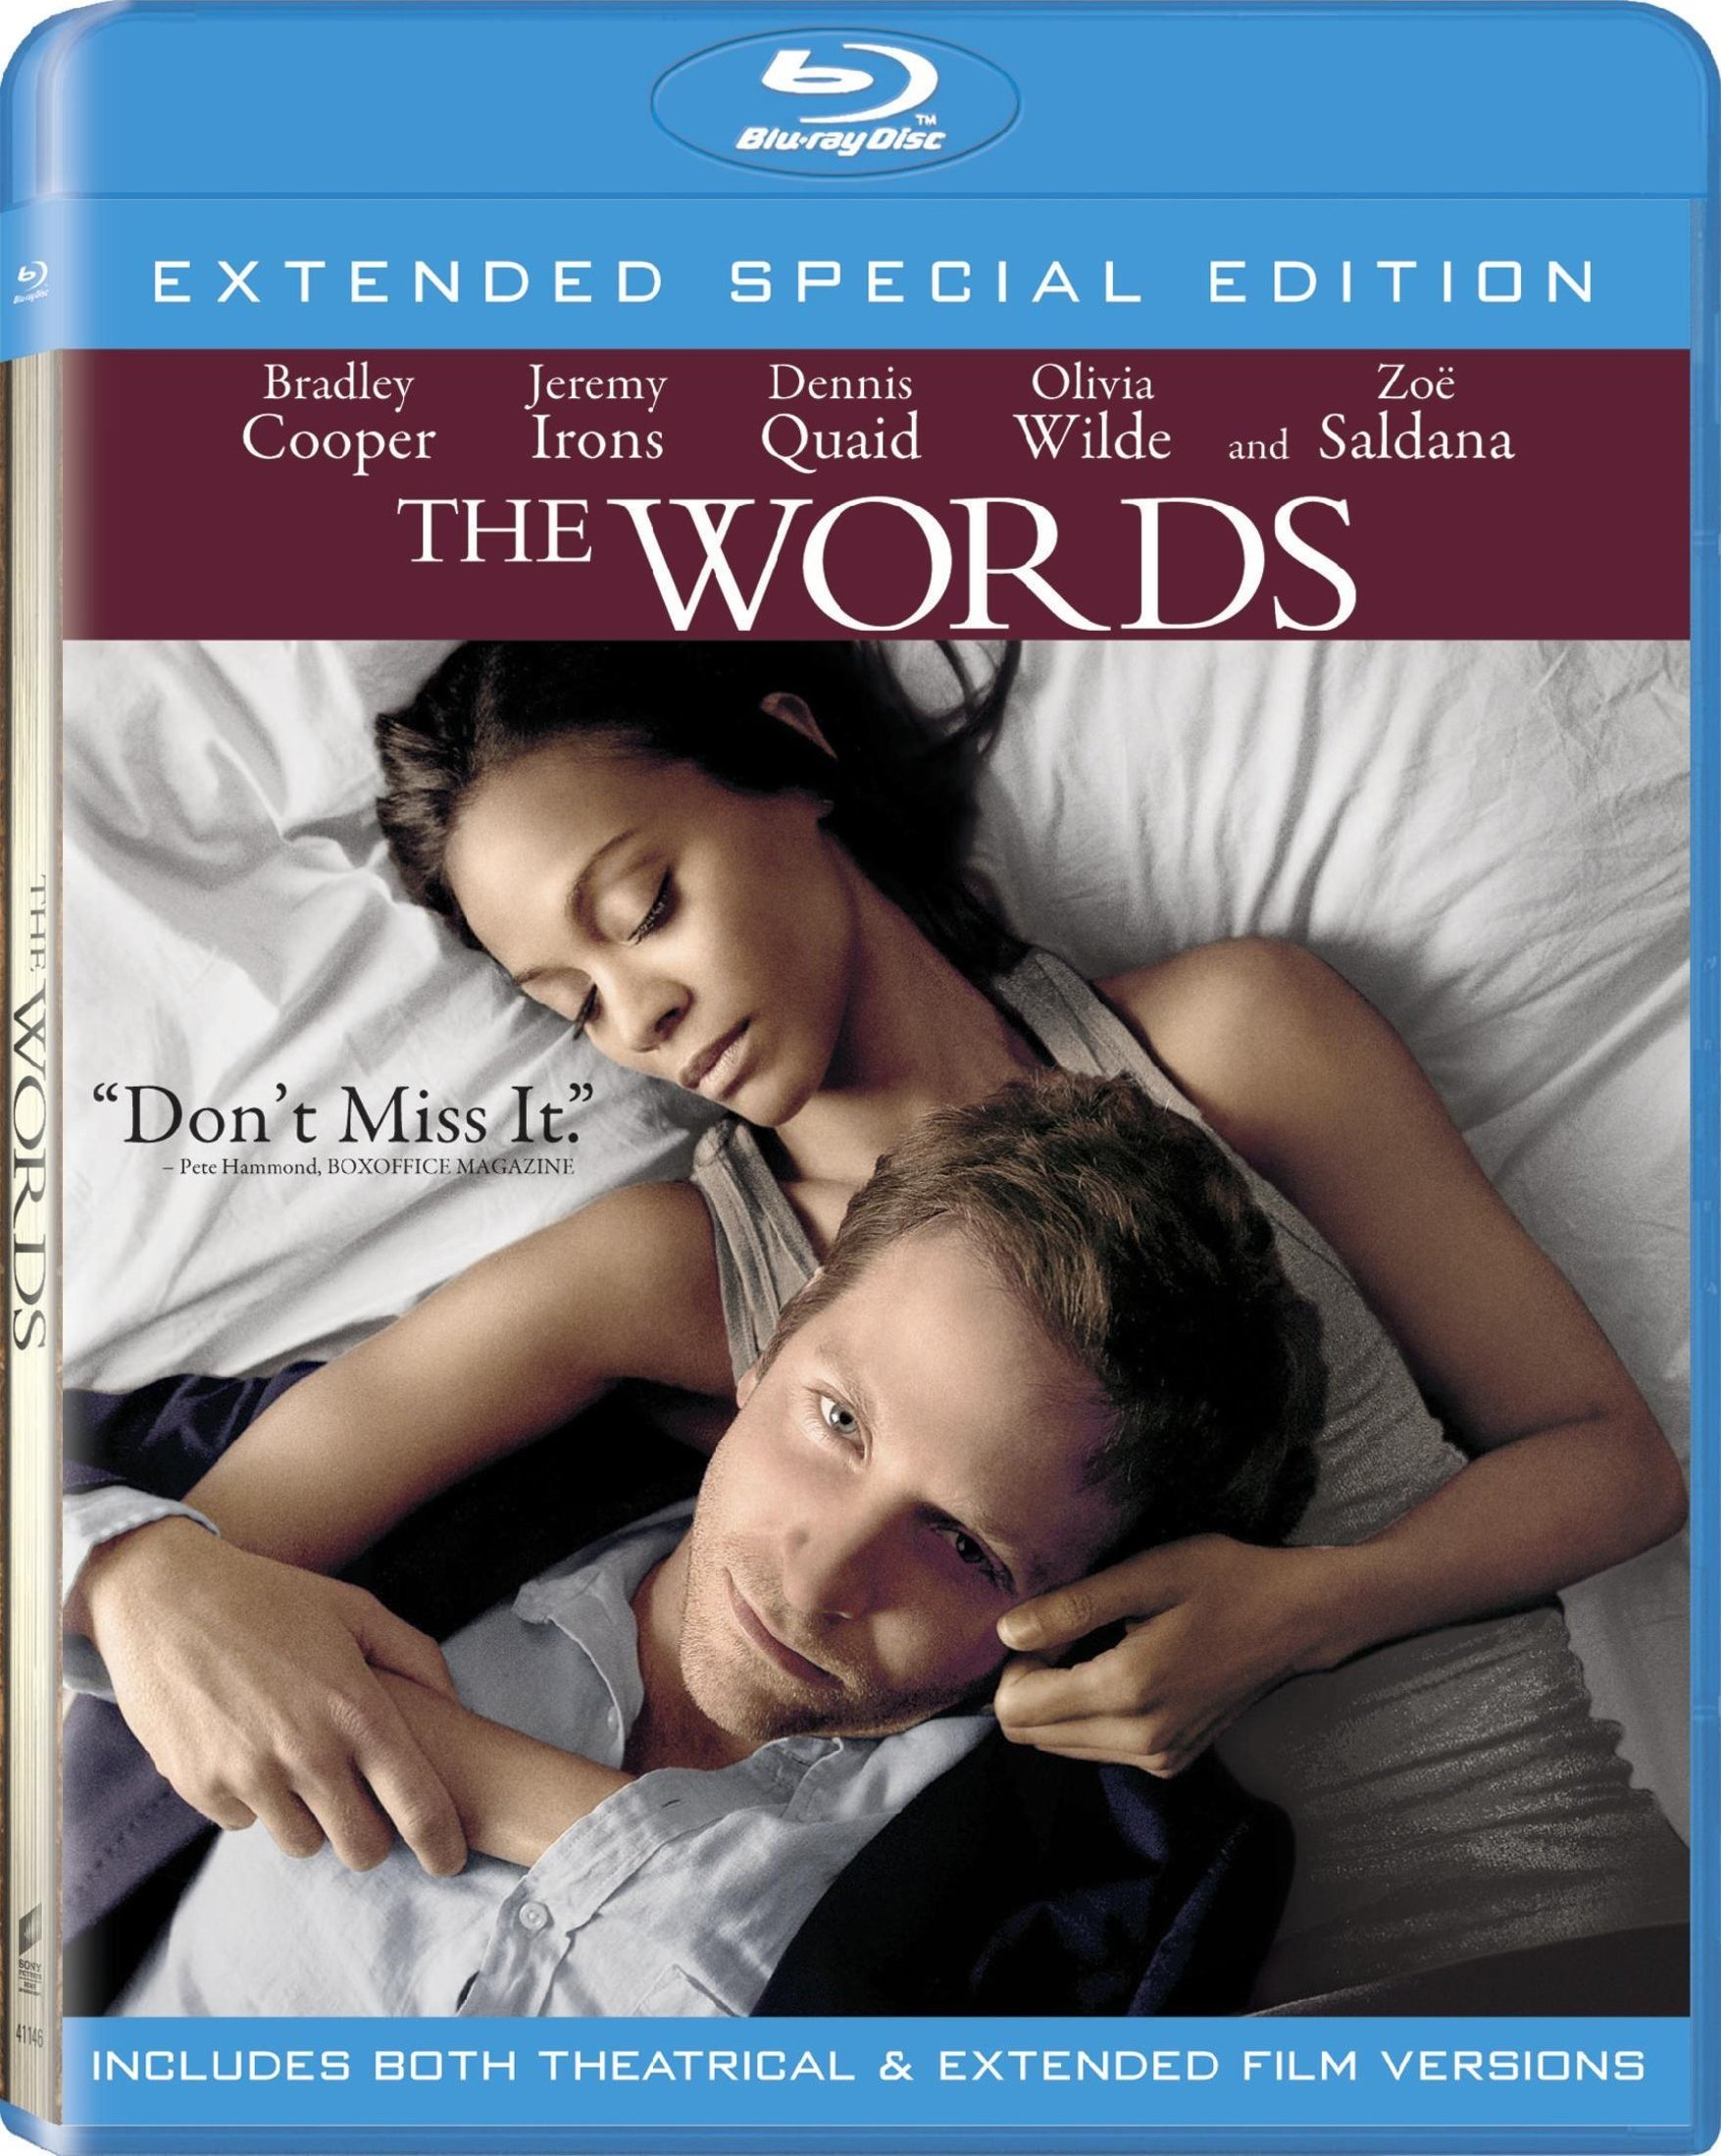 The Words Blu-Ray Review